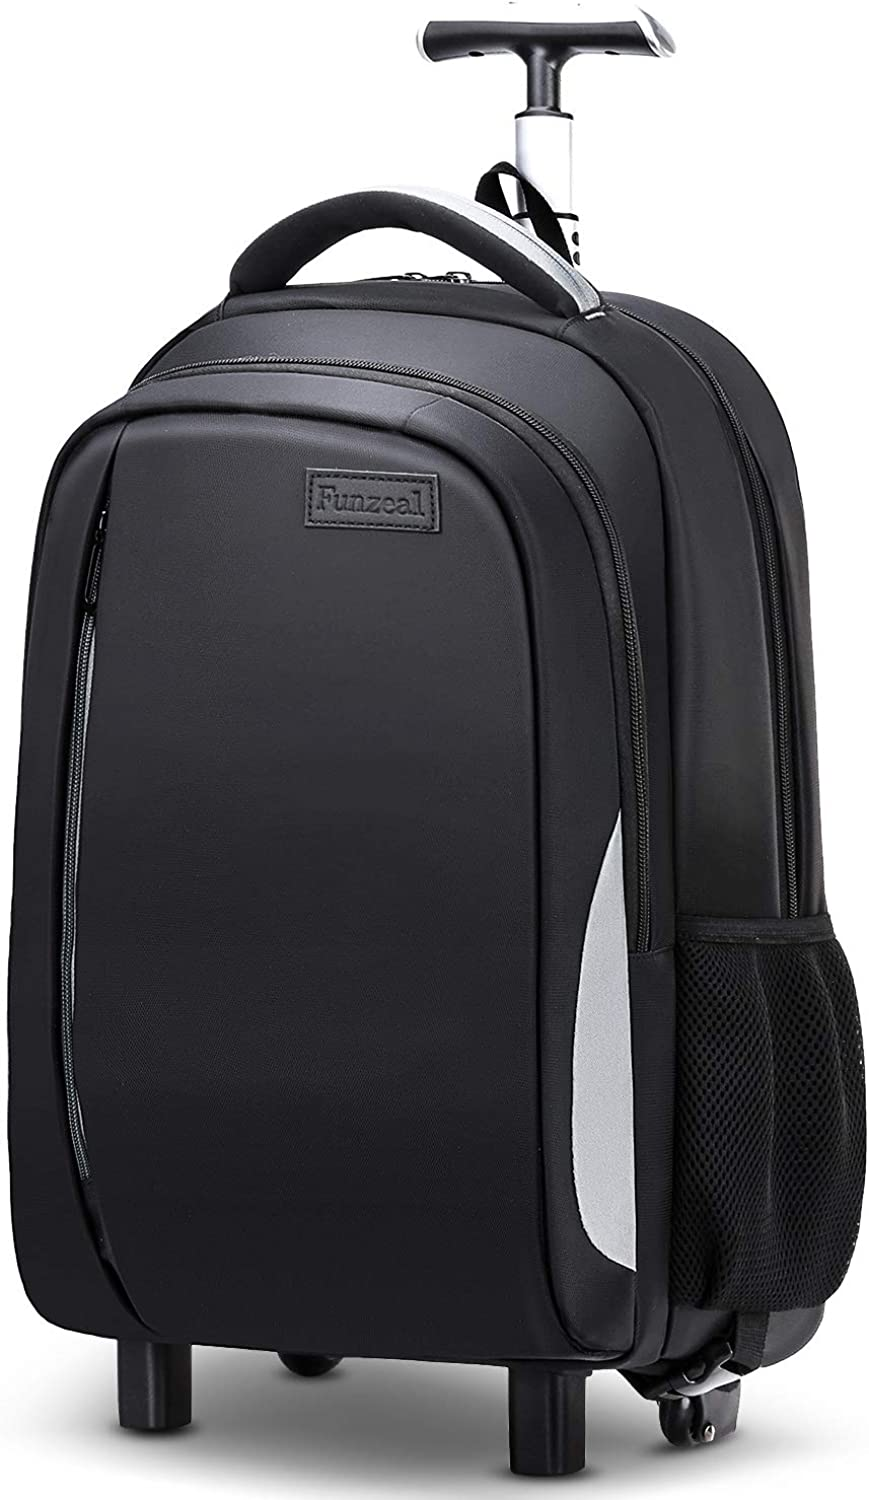 Funzeal Large Rolling Backpack,Carry-on Luggage Backpack Fits 17-Inch Laptop for Business/Travel, Waterproof Wheeled Laptop Backpack for College School Students,Black